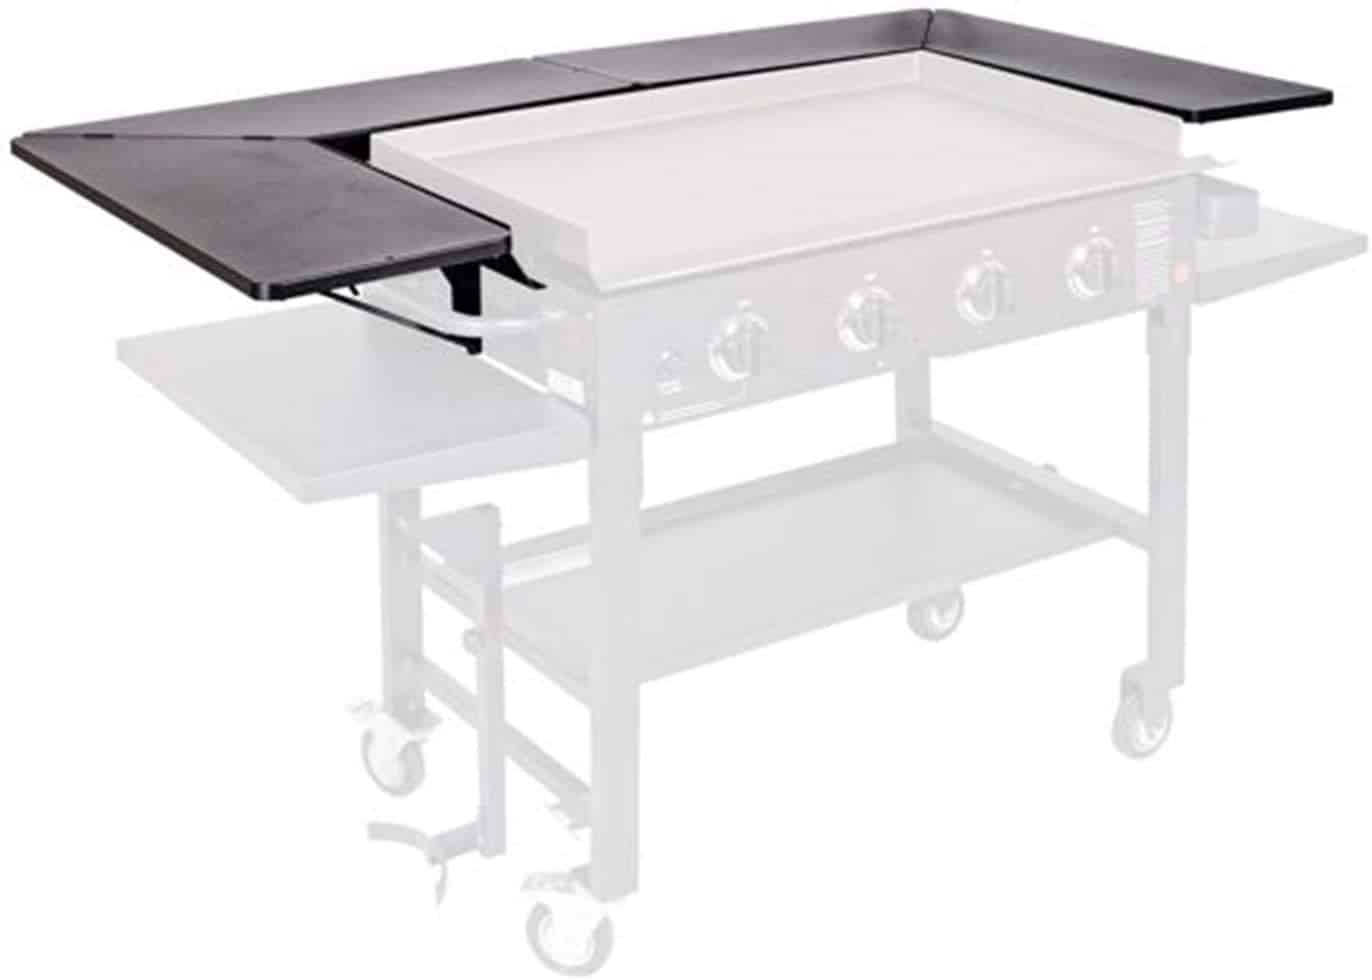 Best Teppanyaki grill table: DCYourHome Blackstone Table Accessory